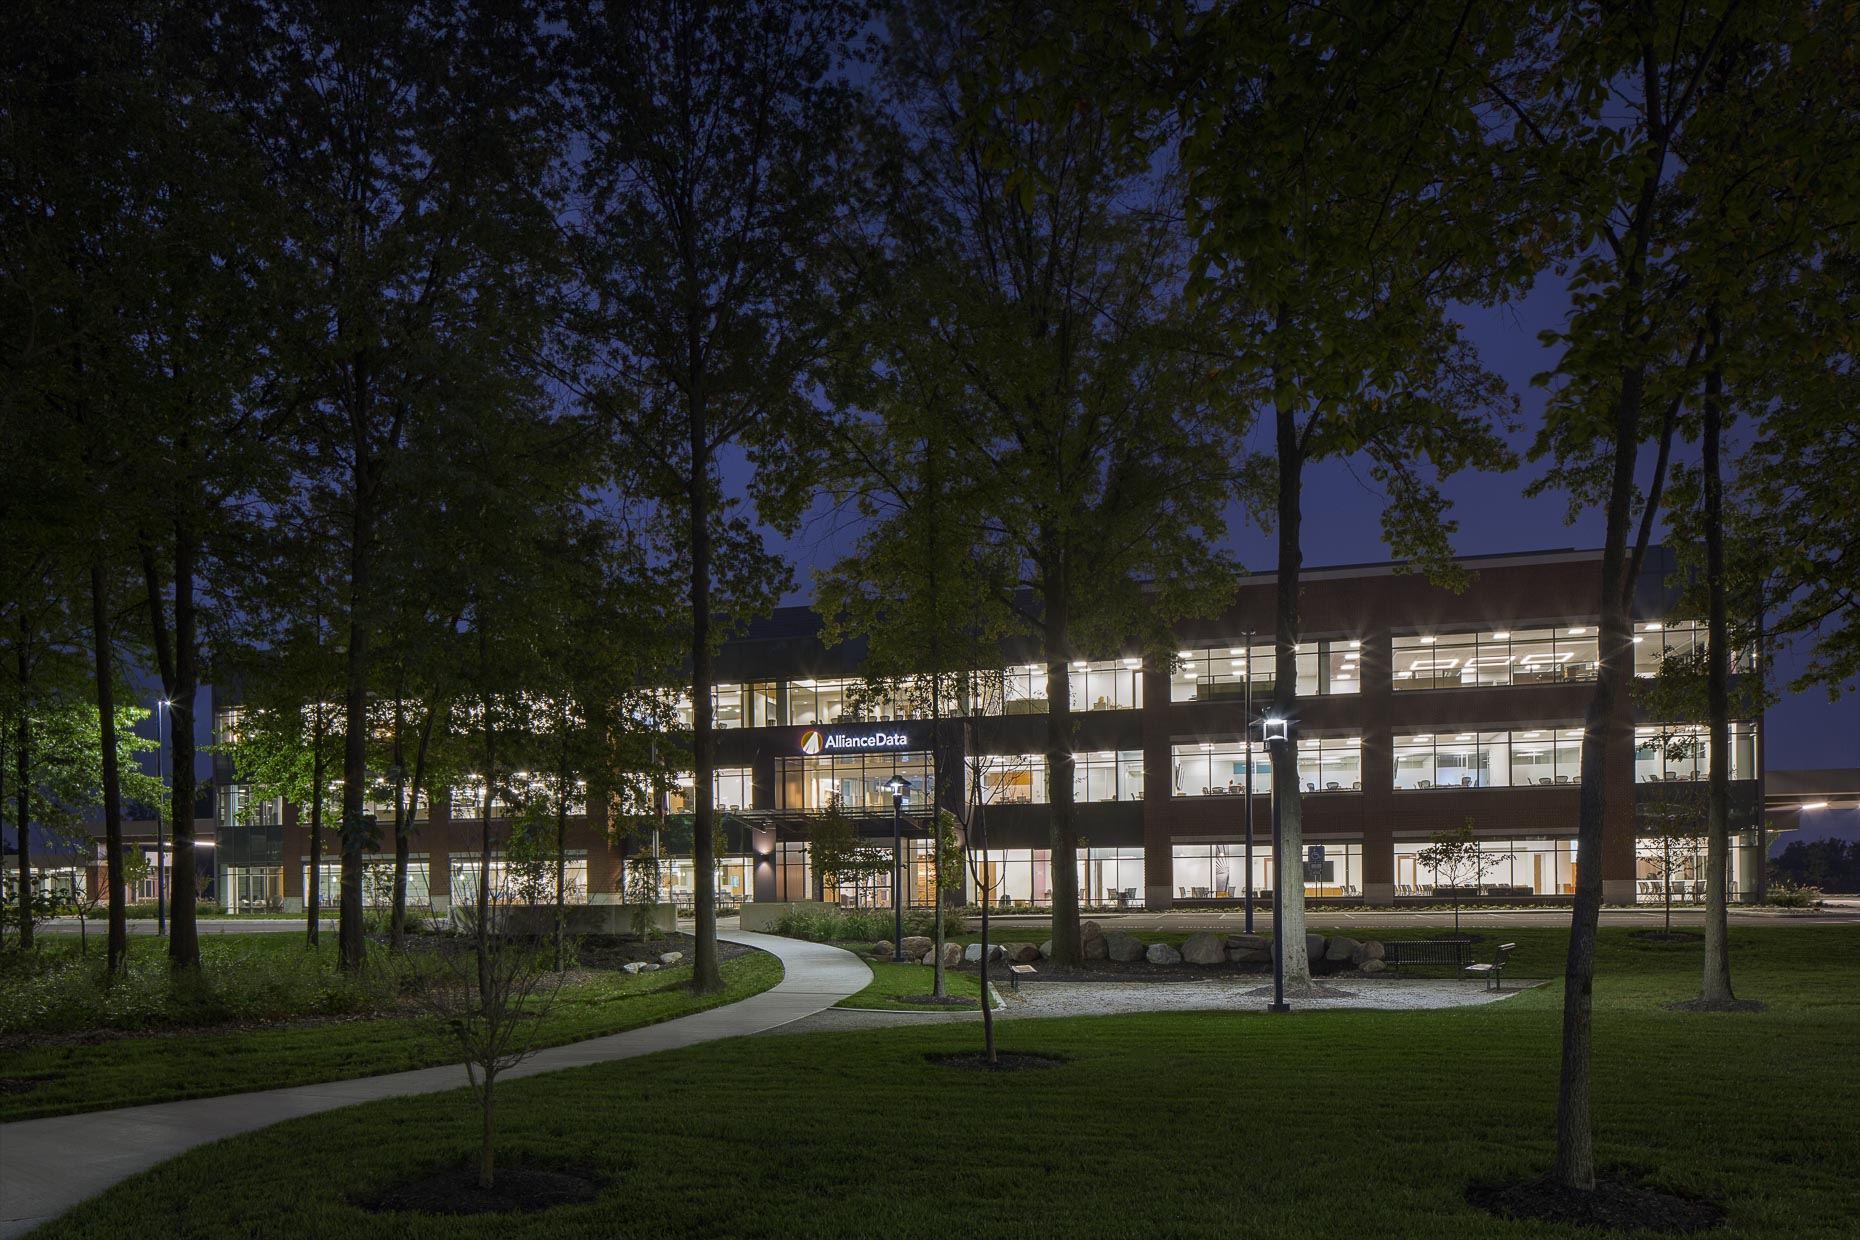 Alliance Data Systems by Moody Nolan photographed by Lauren K Davis based in Columbus, Ohio